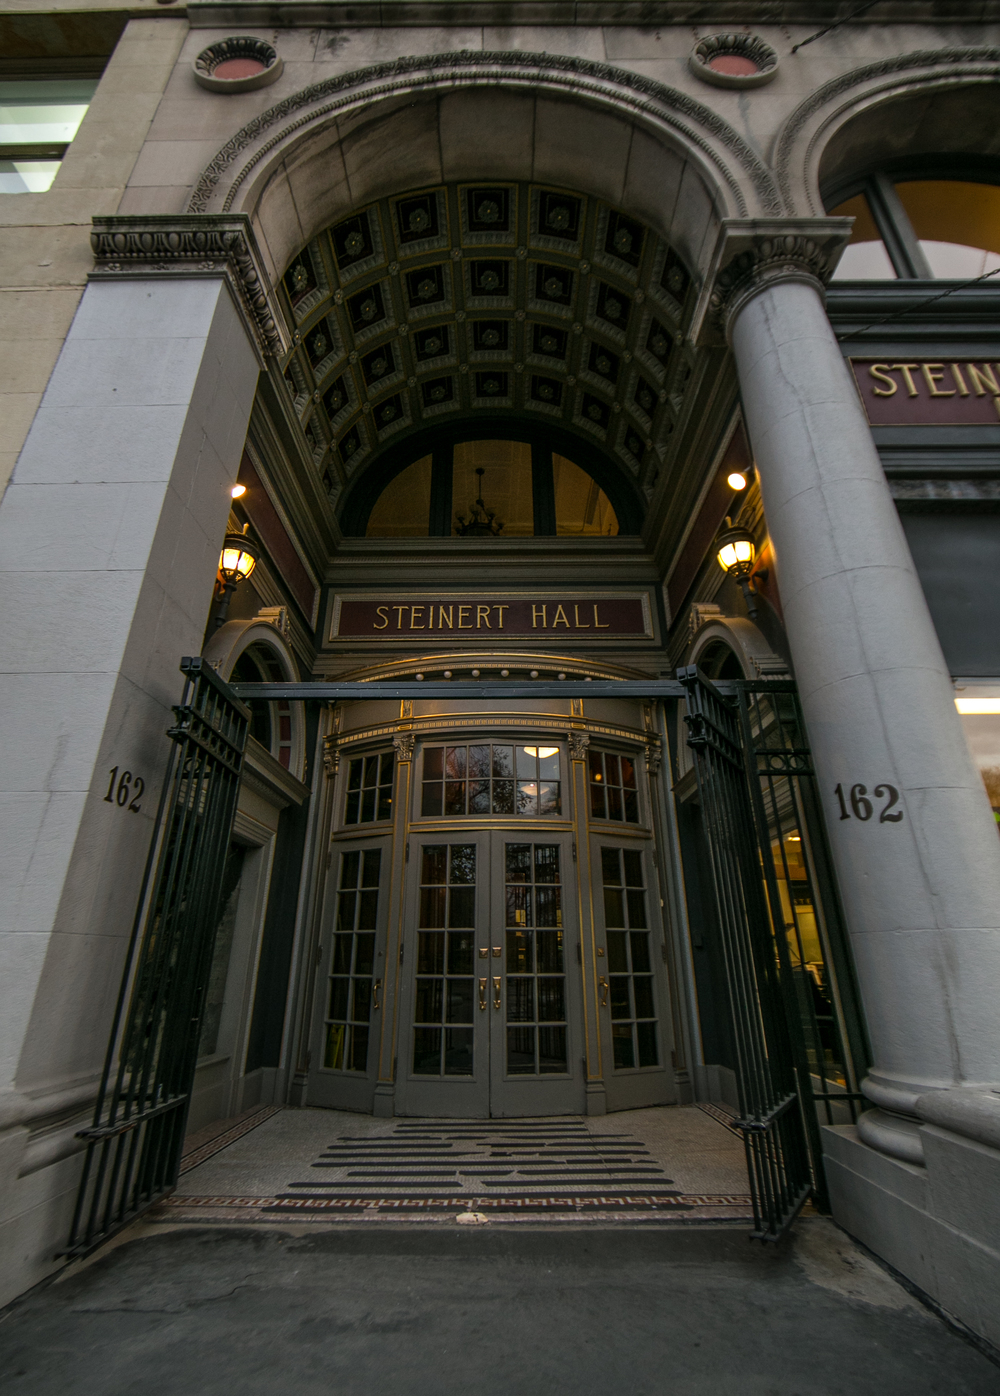 November 10, 2015: 162 Boylston Street, Boston, Mass. – The entranceway to M. Steinert and Sons piano storefront was designed by architects, Winslow and Wetherell during the construction of the building in 1896. The doorway is original to the six-story limestone and brick Beaux Arts-style façade, and once served as the main entrance to Steinert concert hall. ©Mike Schwarz